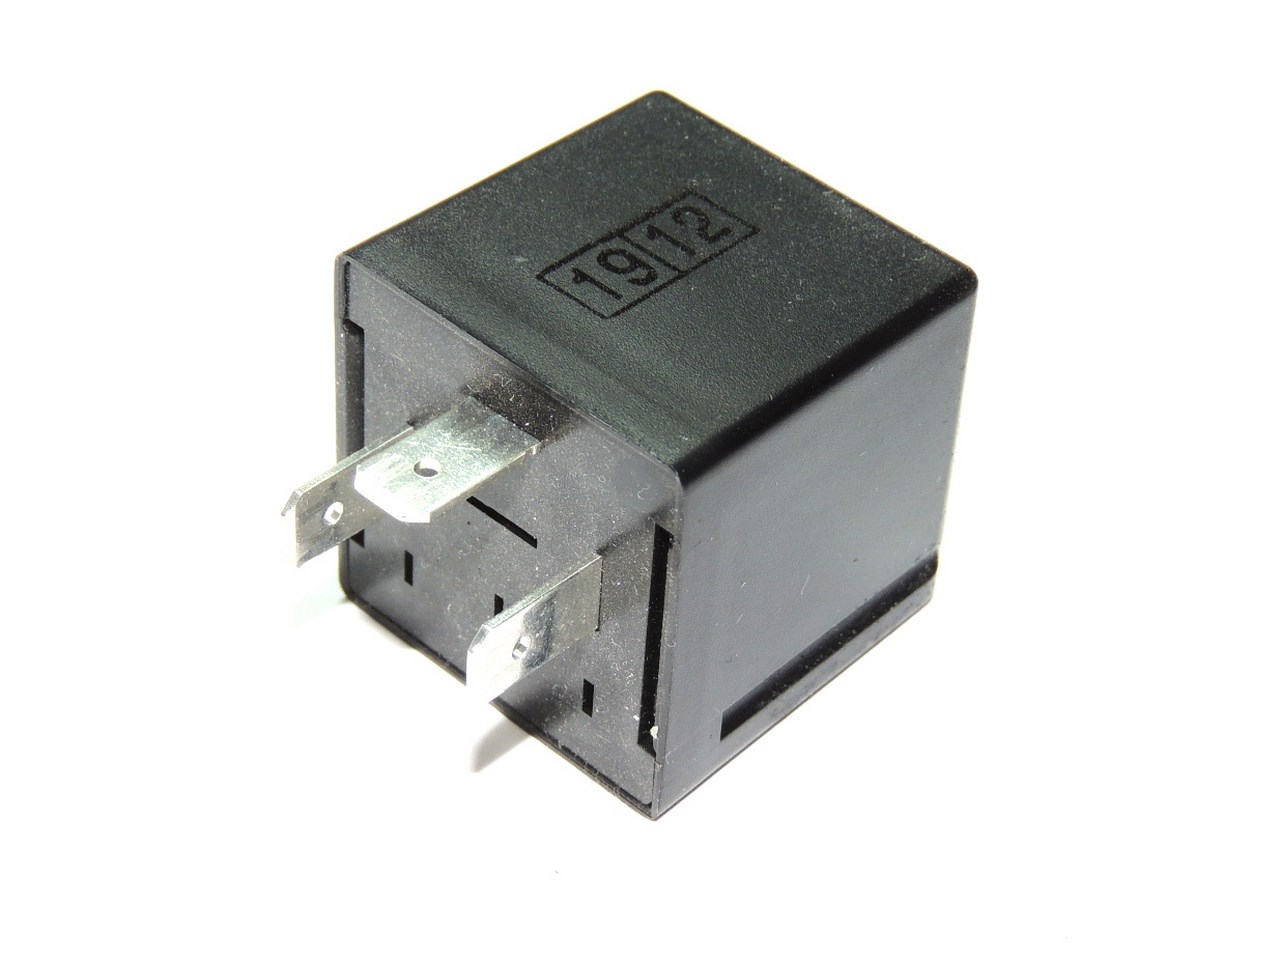 Interrupter of blinkers 12V 2x10W